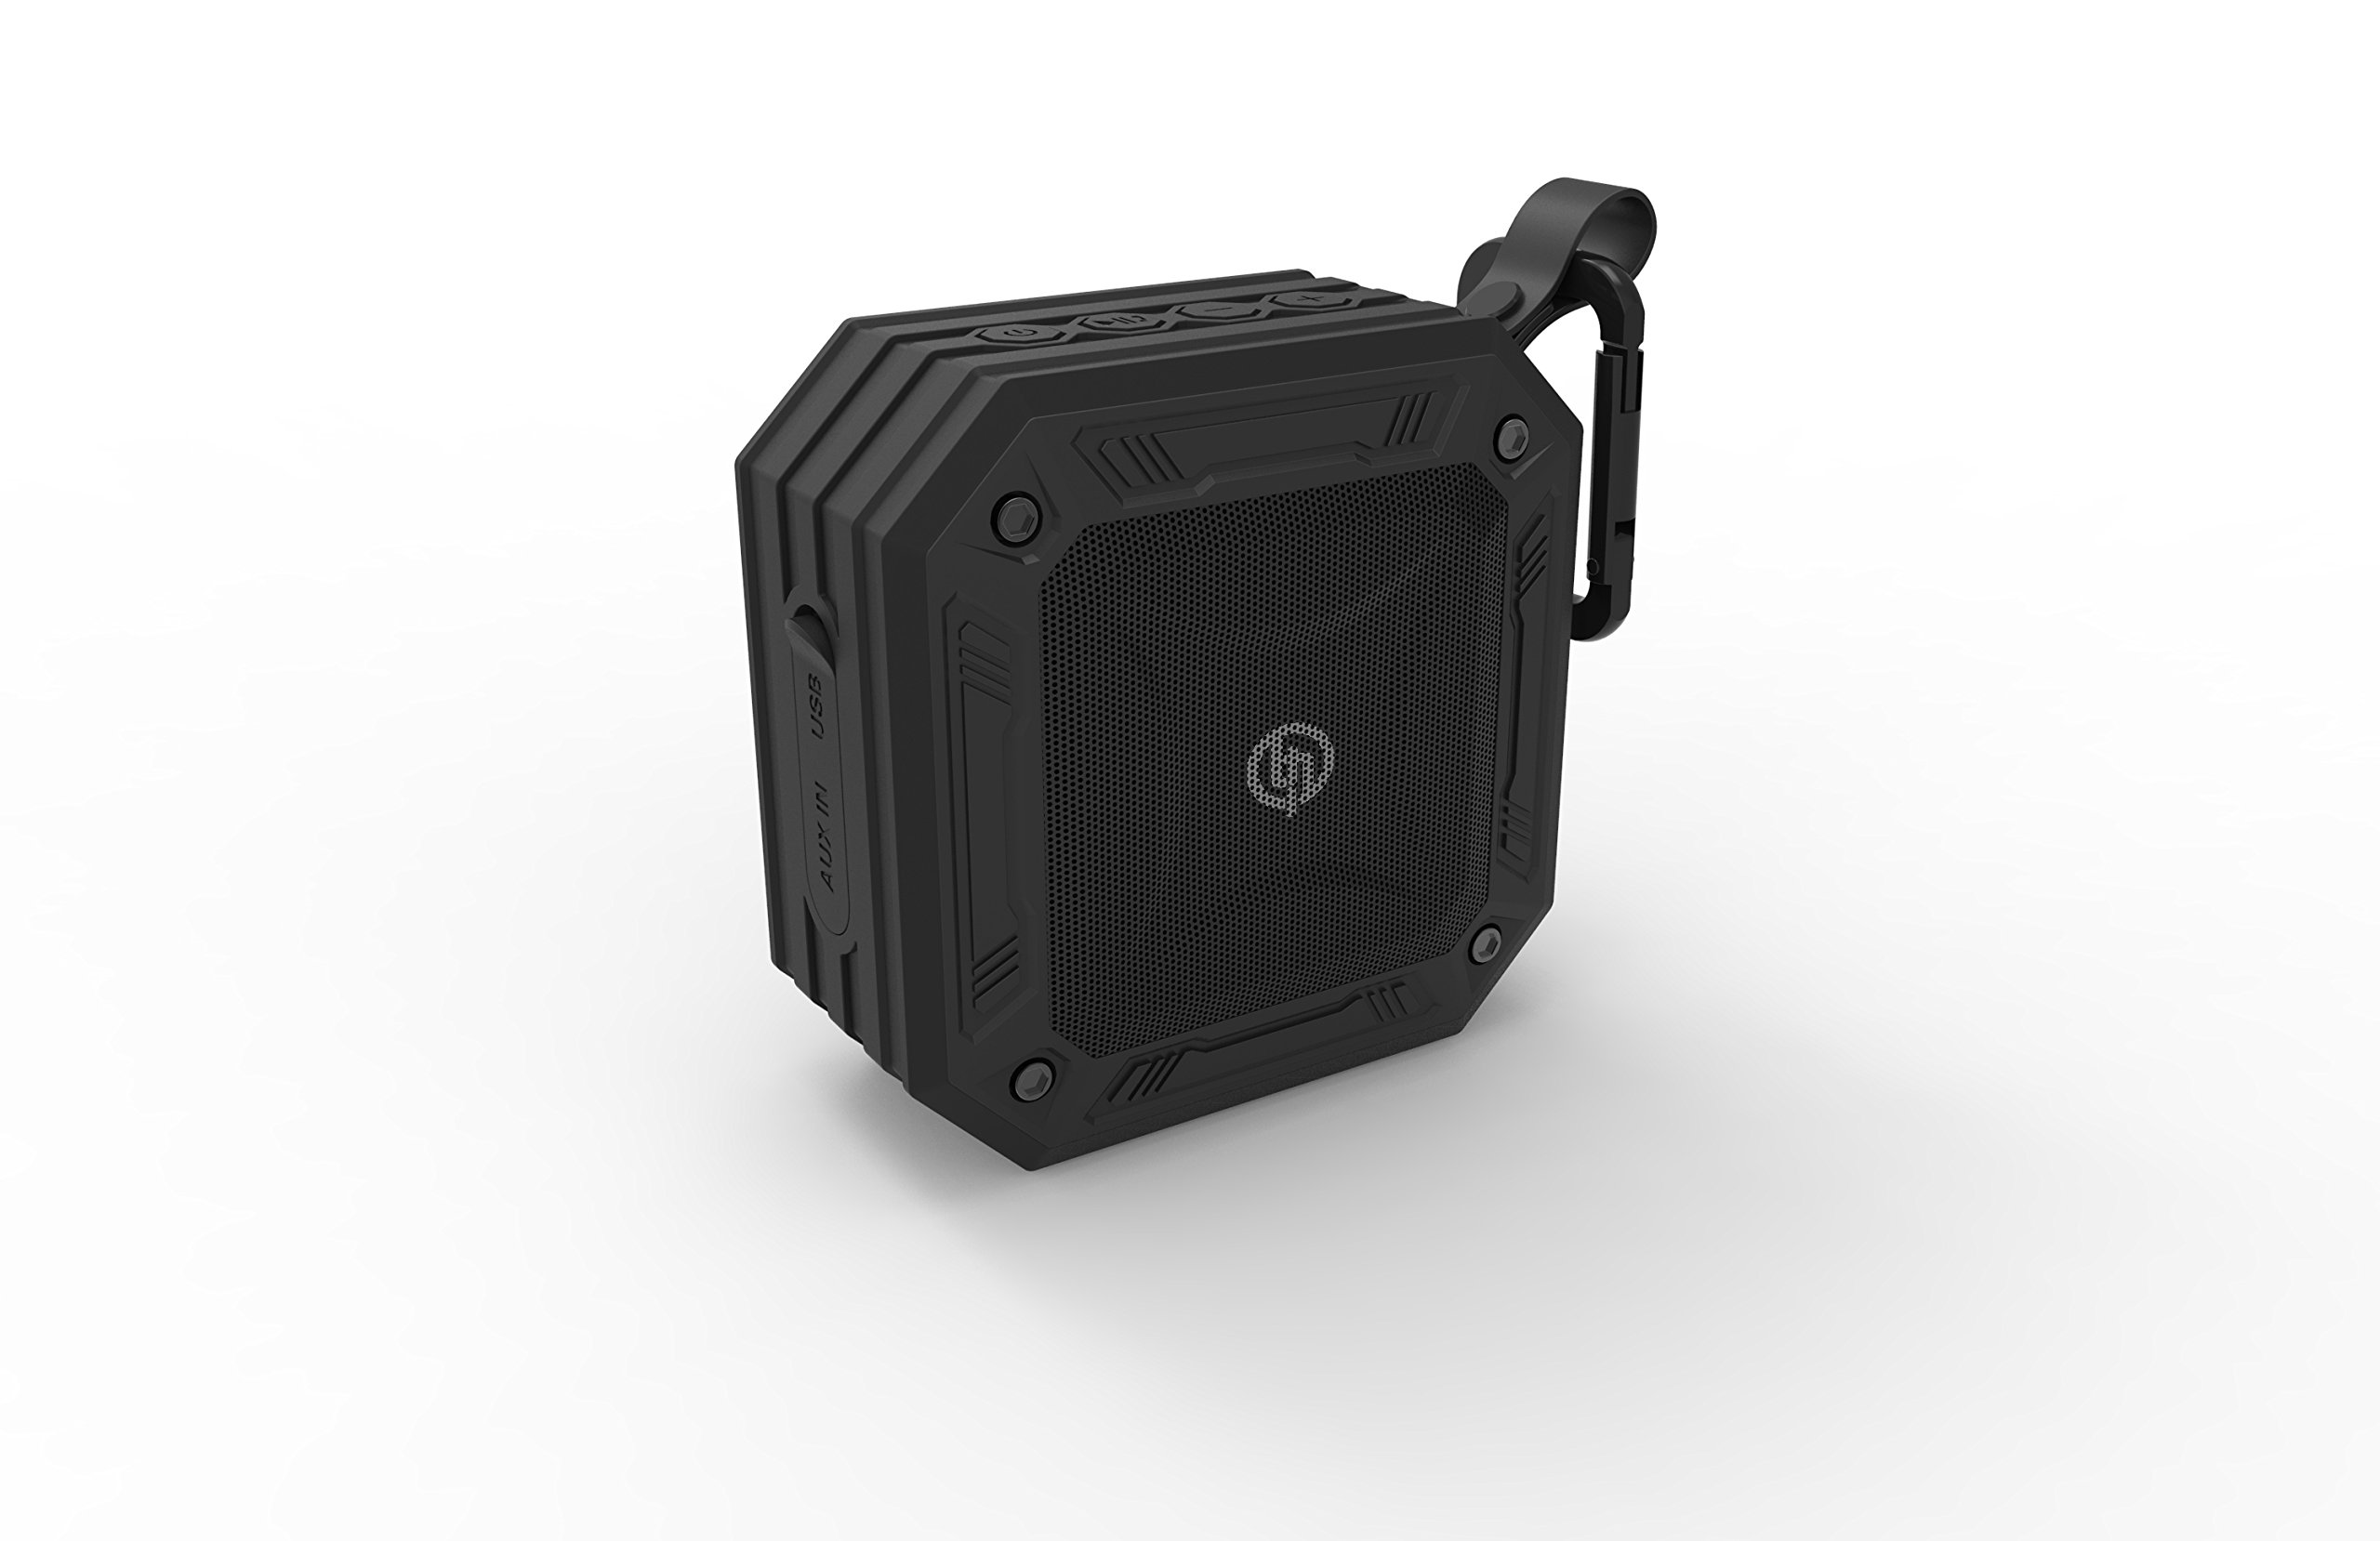 TECHQ HyrdoSound Sport - Waterproof (IP67) Outdoor Bluetooth Speaker 5W - 16 hours of play time by TECHQ (Image #3)